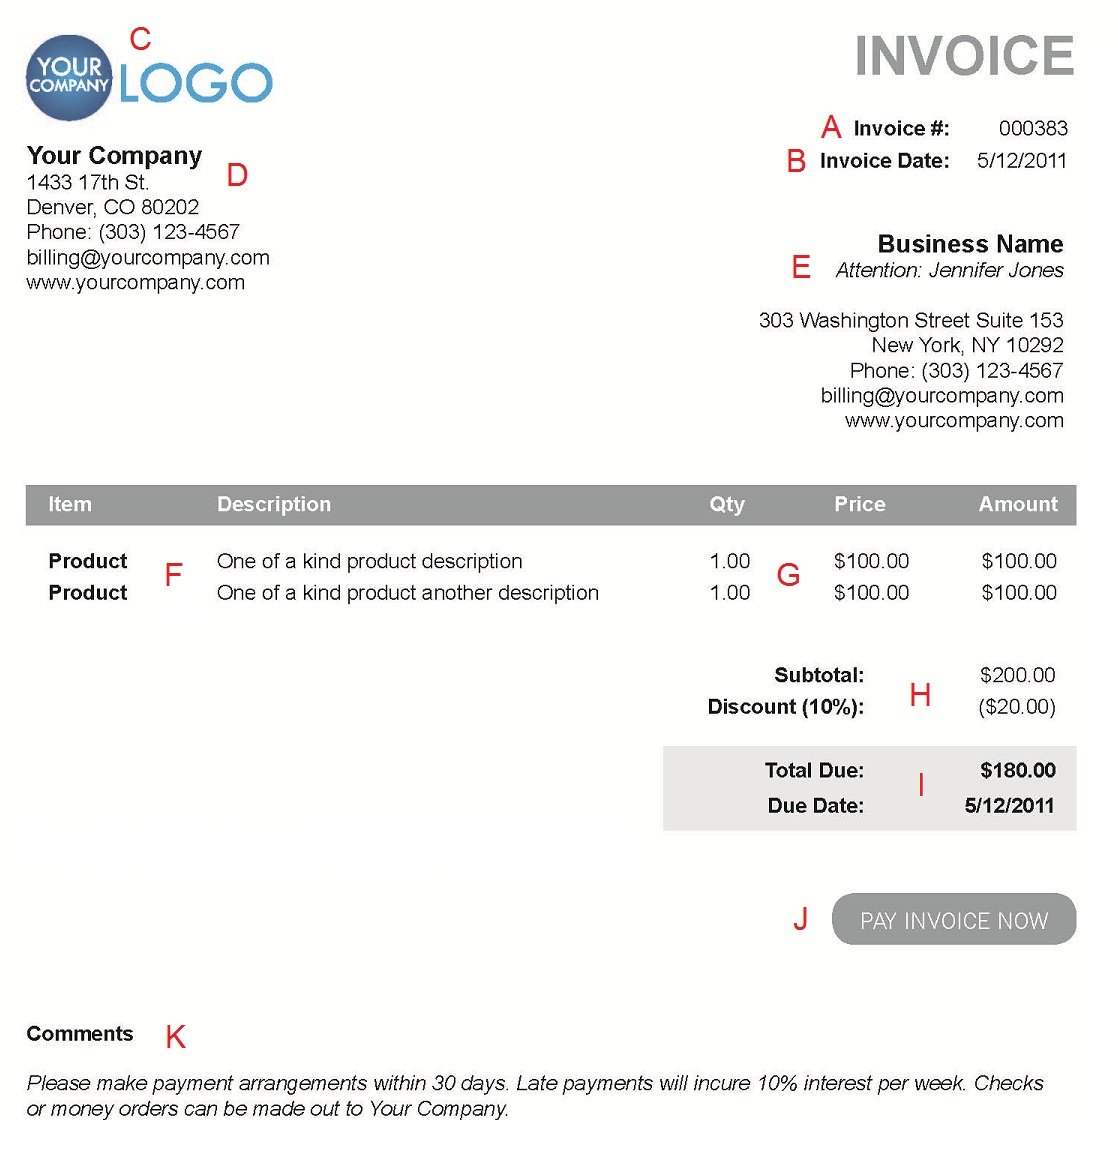 Opposenewapstandardsus  Winning The  Different Sections Of An Electronic Payment Invoice With Excellent A  With Delightful Best Invoicing App Also Quickbook Invoice Templates In Addition Aynax Free Invoice Template And Dealer Invoice Price Vs Msrp As Well As What Does Dealer Invoice Mean Additionally Invoice To Cash From Paysimplecom With Opposenewapstandardsus  Excellent The  Different Sections Of An Electronic Payment Invoice With Delightful A  And Winning Best Invoicing App Also Quickbook Invoice Templates In Addition Aynax Free Invoice Template From Paysimplecom